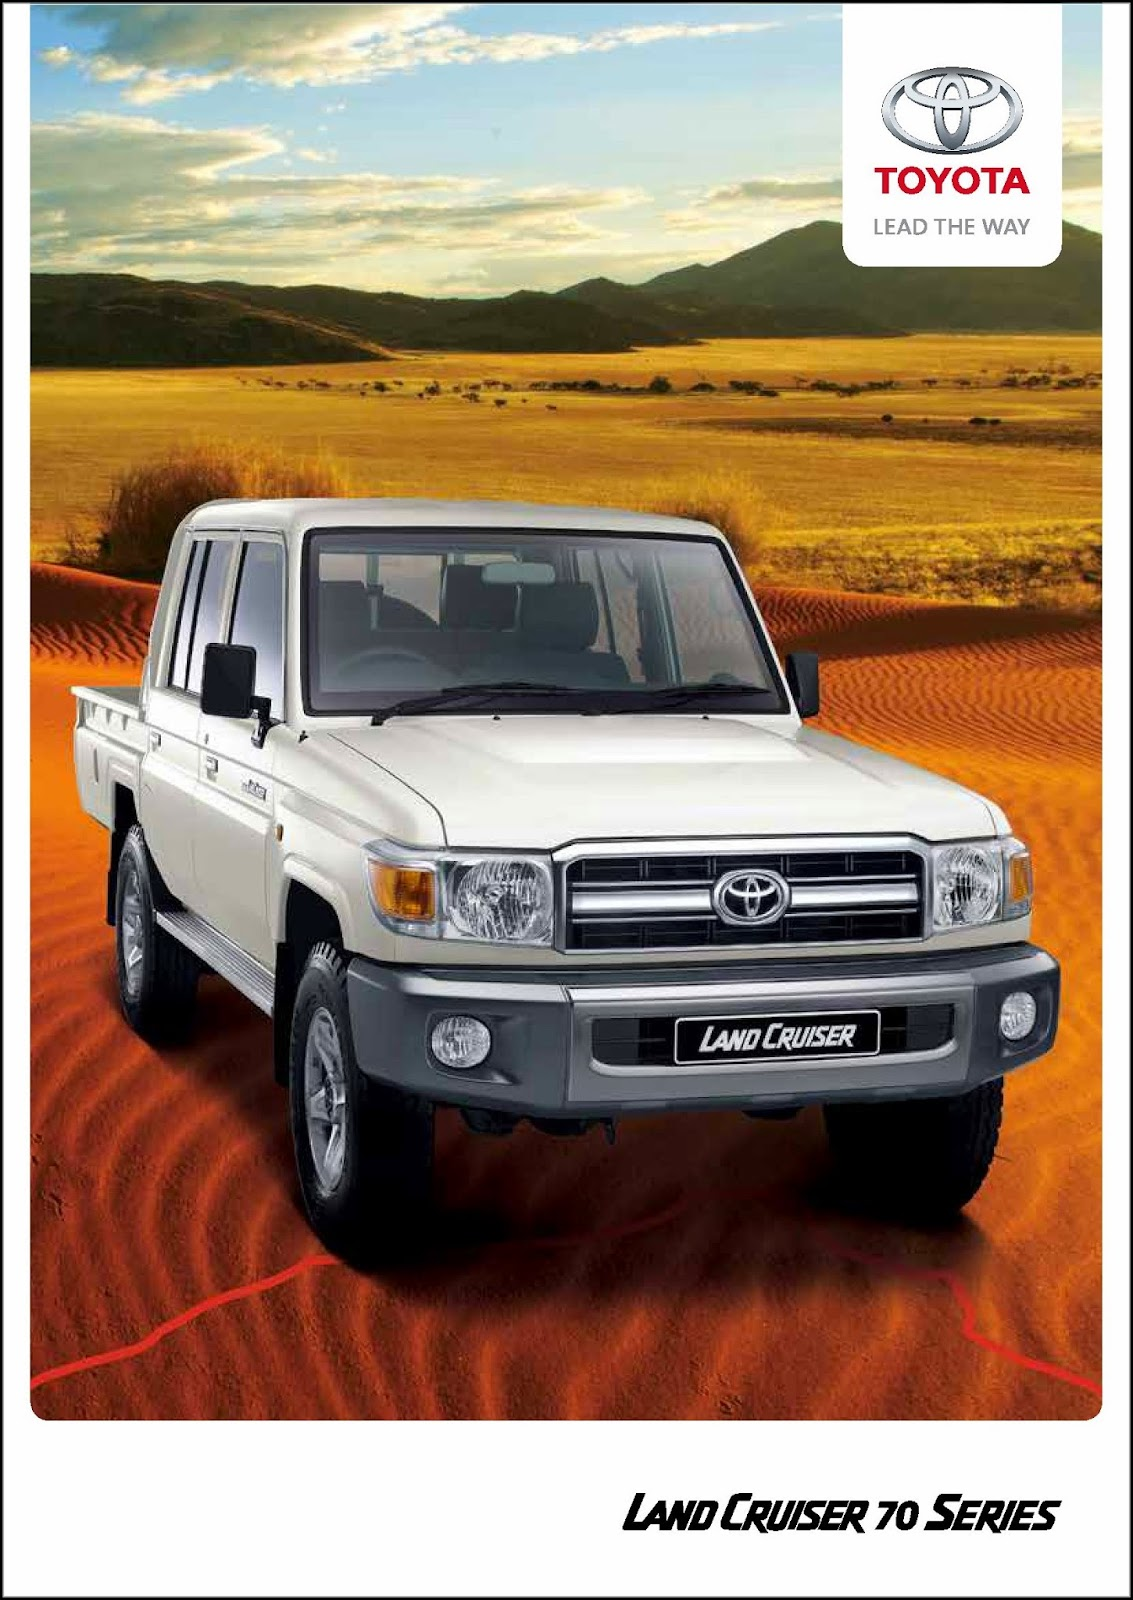 Latest Toyota Models, Latest Toyota Models 2016, All New Latest Toyota Cars Models List, Toyota, Toyota Cars, Toyota Cars Models, Toyota Models,Toyota Pakistan, Toyota Mobility Feature, Toyota Vehicle, Toyota Cars List, All Toyota Cars, Toyota Rent A Car, Toyota Rank, Toyota Reviews, Toyota Pakistan, Toyota India, Toyota Location , Toyota Certified Used Cars, Toyota  Certified Used Vehicles, Toyota Owners, Toyota Searches, Toyota Shopping Tools, Toyota Dealers, Toyota Cars Prices, Toyota Car Tips & Advice, Toyota Rate List, Toyota Cars Special Models, Toyota Cars Prices, Toyota Hybrids, Toyota Crossovers, Toyota SUVs, Toyota Trucks, Toyota Minivans, Toyota All Vehicles, Toyota Models Features, Toyota Prices In Our Country, New Toyota Yaris Prices, New Toyota Corolla Prices, New Toyota Prius C Prices, New Toyota Tacoma Prices, New Toyota Camry Prices, New Toyota RAV4 Prices, New Toyota Prius Prices, New Toyota Prius V Prices, New Toyota Camry Hybrids Prices, New Toyota Tundra Prices, New Toyota Sienna Prices, New Toyota Venza Prices, Toyota Mobile Phone Compatibility New Toyota Highlander Prices, New Toyota Prius Plug in-Hybrids Prices, Toyota Service Campaigns New Toyota Avalon Prices, New Toyota 4Runner Prices, New Toyota Avalon Hybrid Prices, New Toyota Sequoia Prices, New Toyota Highlander Prices, New Toyota Land Cruiser Prices, Toyota Cars Accessories, Toyota Updates, Build Your Toyota, Toyota Inventory, Toyota Hybrids & Evs, Toyota Hybrid Cars, Toyota Financial Services, Toyota Hybrid SUVs, Toyota Upcoming Vehicles, Toyota Concept Vehicles, Toyota Safety Recalls, Toyota Shops, Toyota Showrooms, Toyota Prices List, Toyota Facebook, Toyota Twitter, Toyota Youtube, Toyota Dailymotion, Toyota Google +, Toyota Instagram, Toyota Official Website, Toyota Cars Videos, Toyota  Careers, Toyota  Our Company, Toyota USA Newsroom, Toyota Worldwide, Toyota Racing, Toyota Picture Gallery, Toyota Catalogue Pdf , Toyota Catalogue, Toyota Hilux Catalogue Pdf, Toyota Forklift Cat